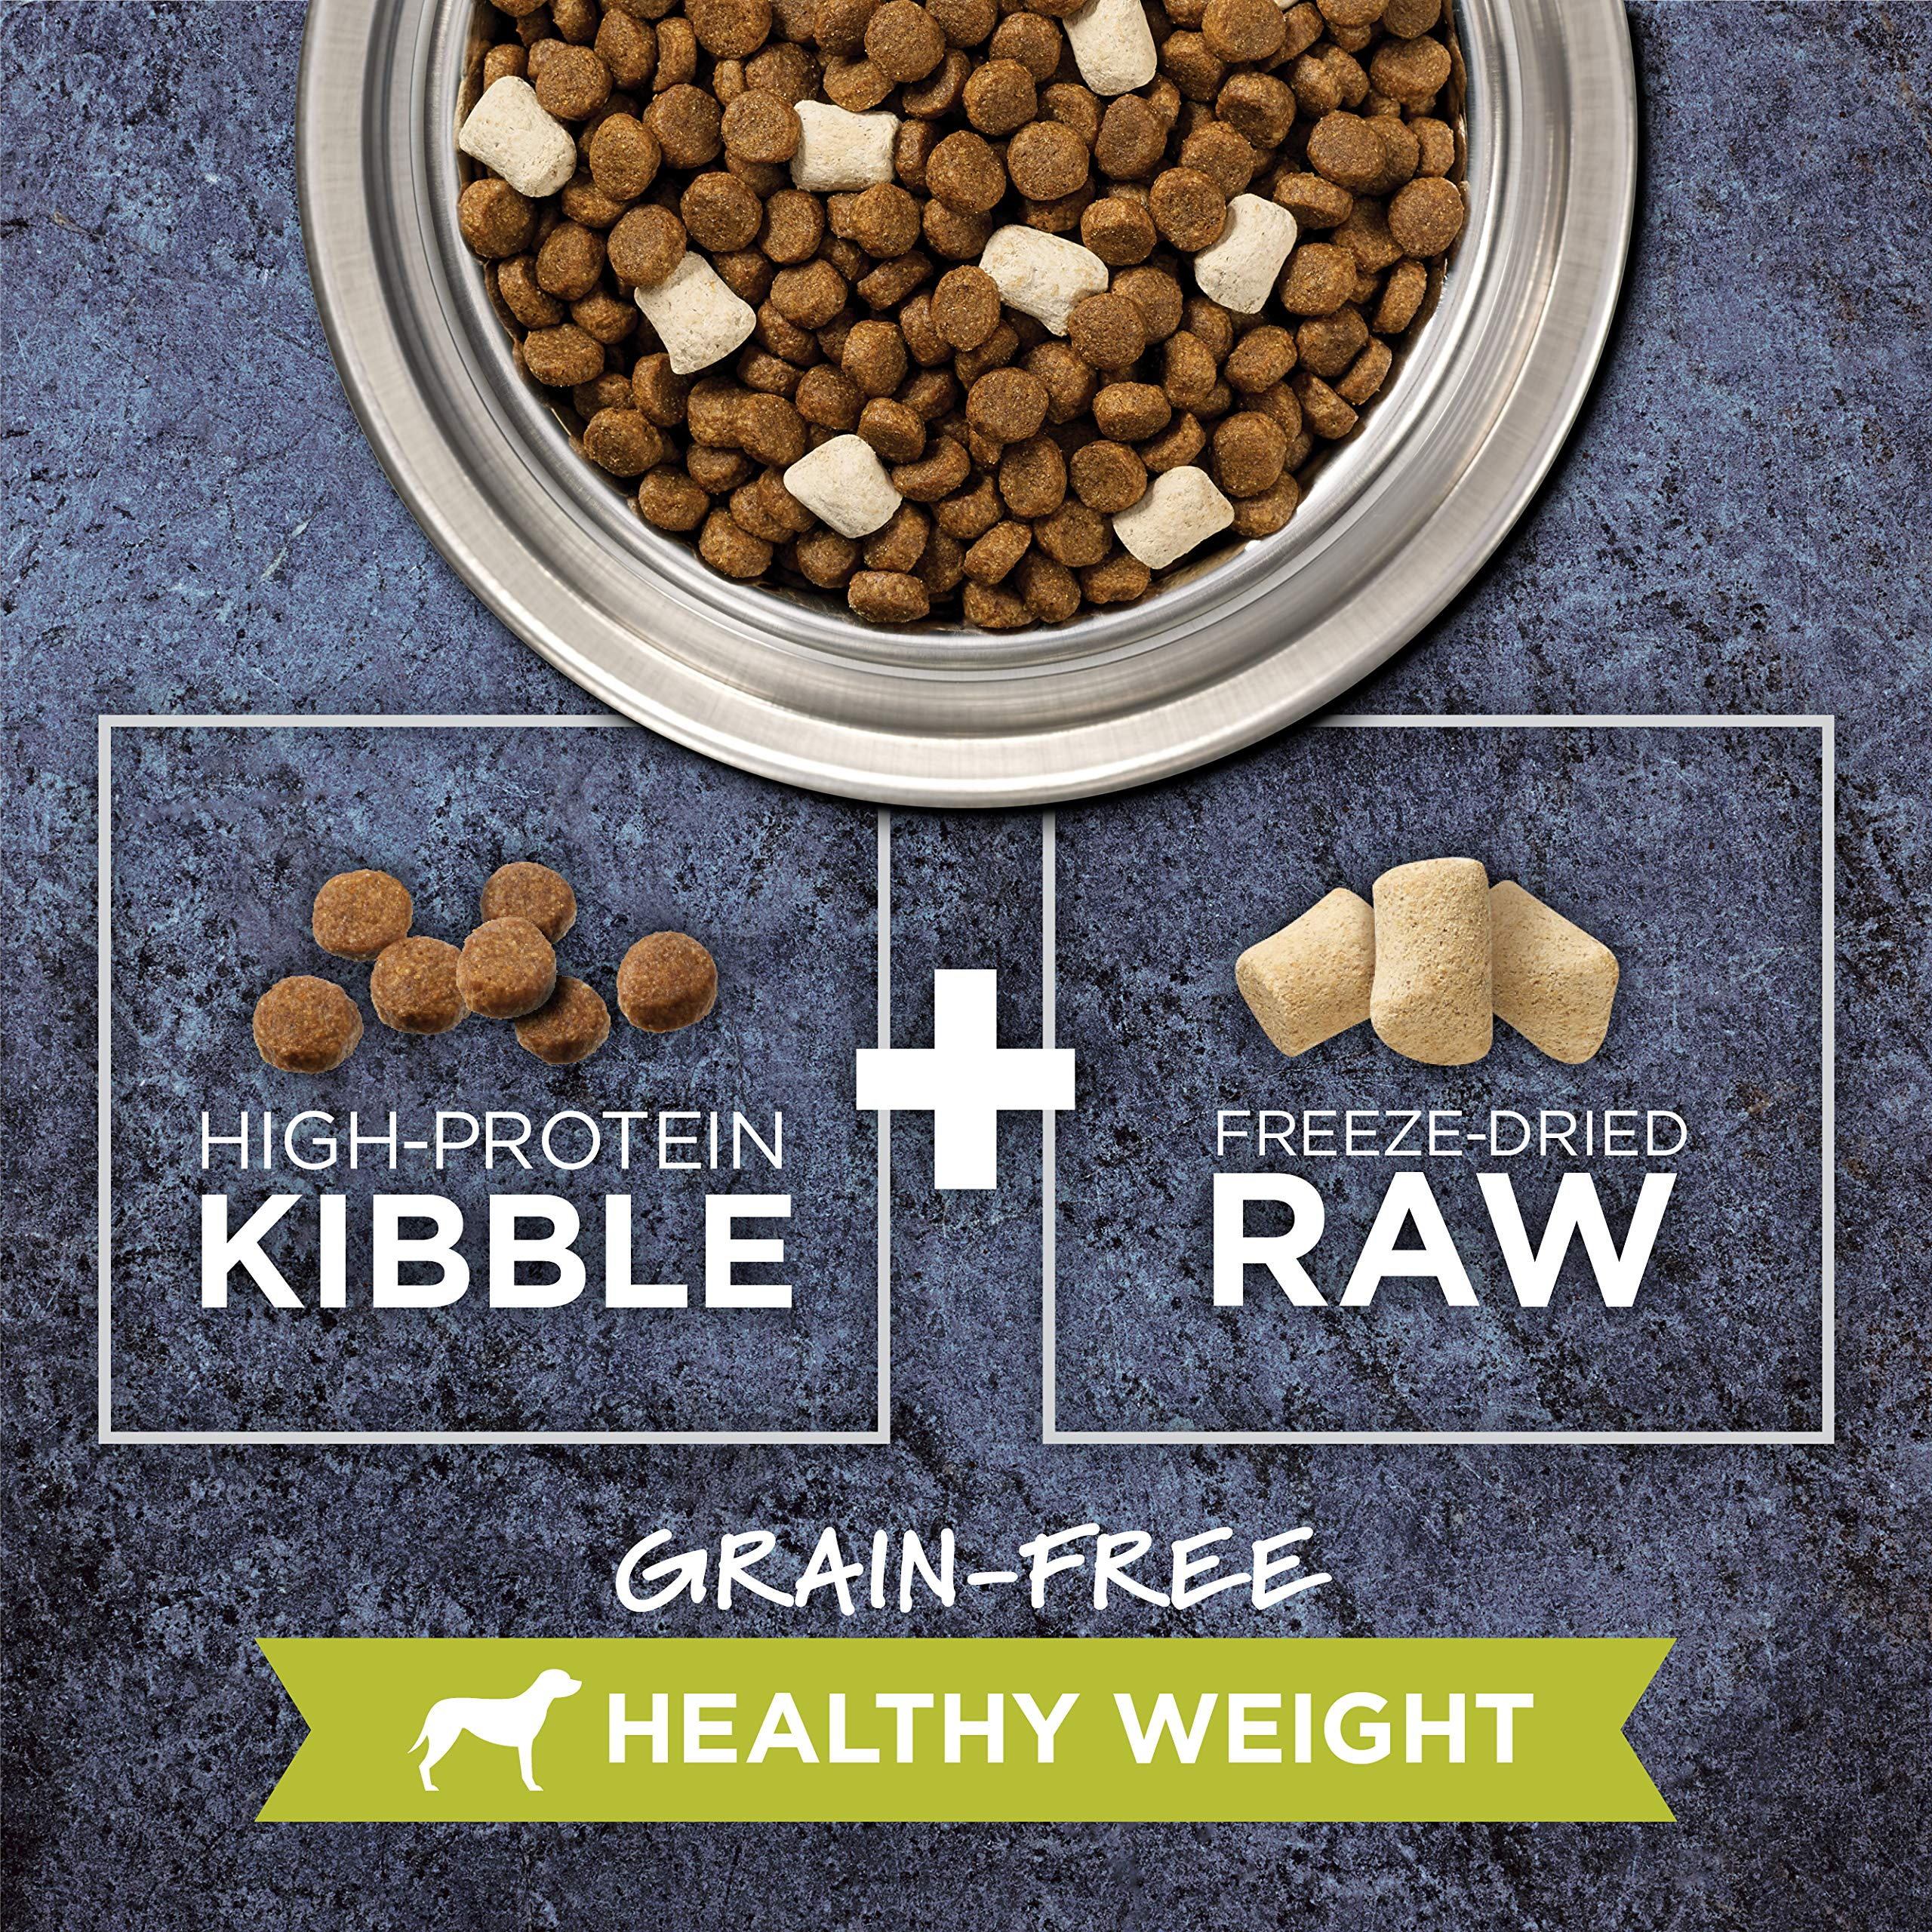 Instinct Raw Boost Healthy Weight Grain Free Recipe with Real Chicken Natural Dry Dog Food by Nature's Variety, 20 lb. Bag by Instinct (Image #3)